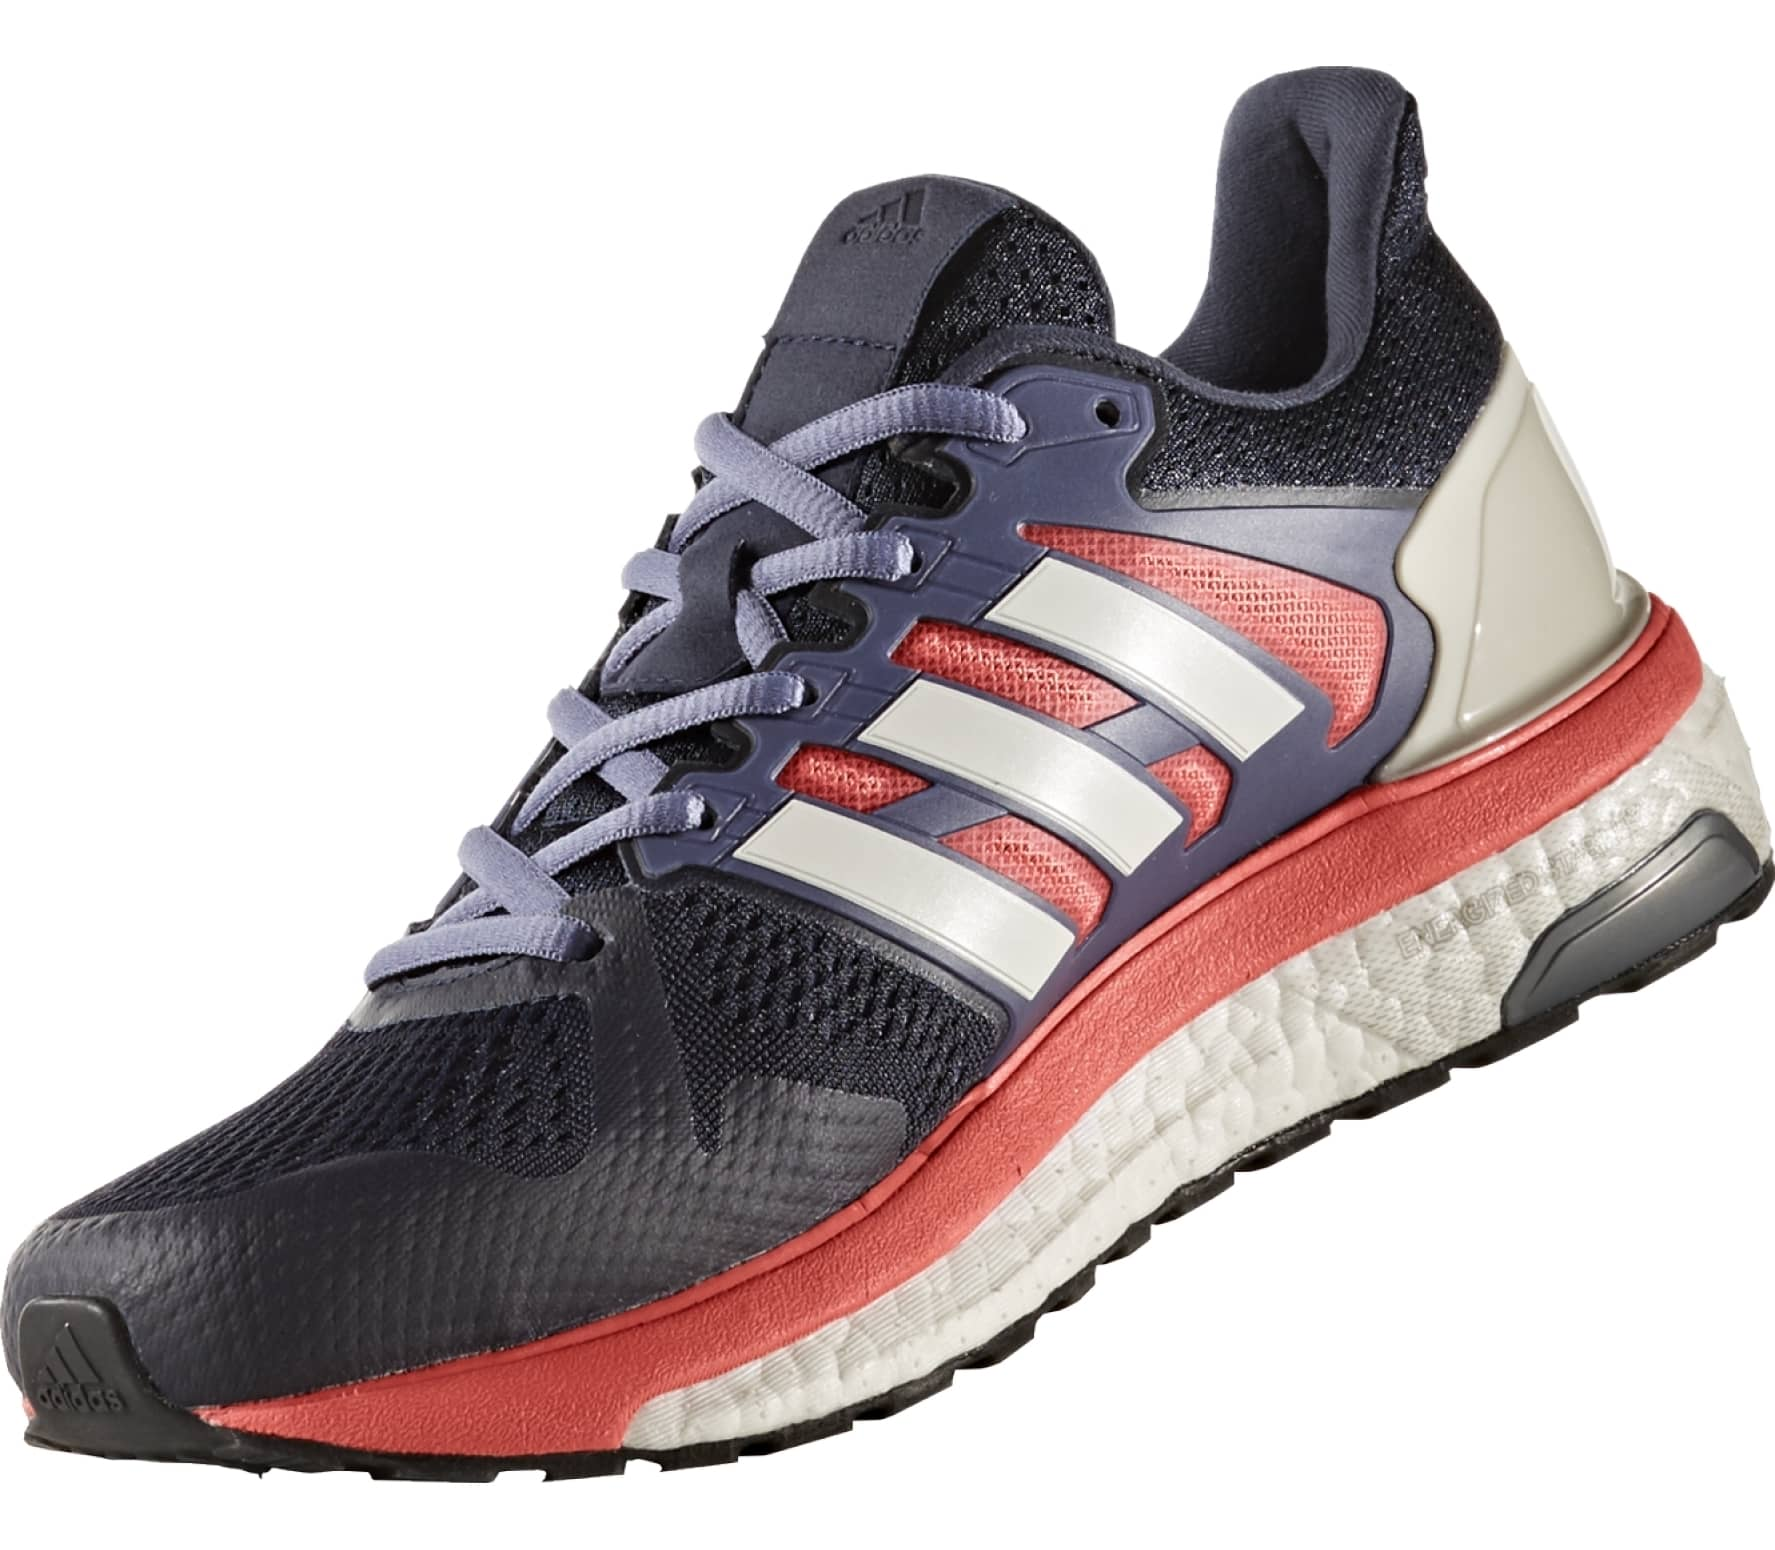 5a58f794c1bb63 Adidas - Supernova ST women s running shoes (dark blue white) - buy ...